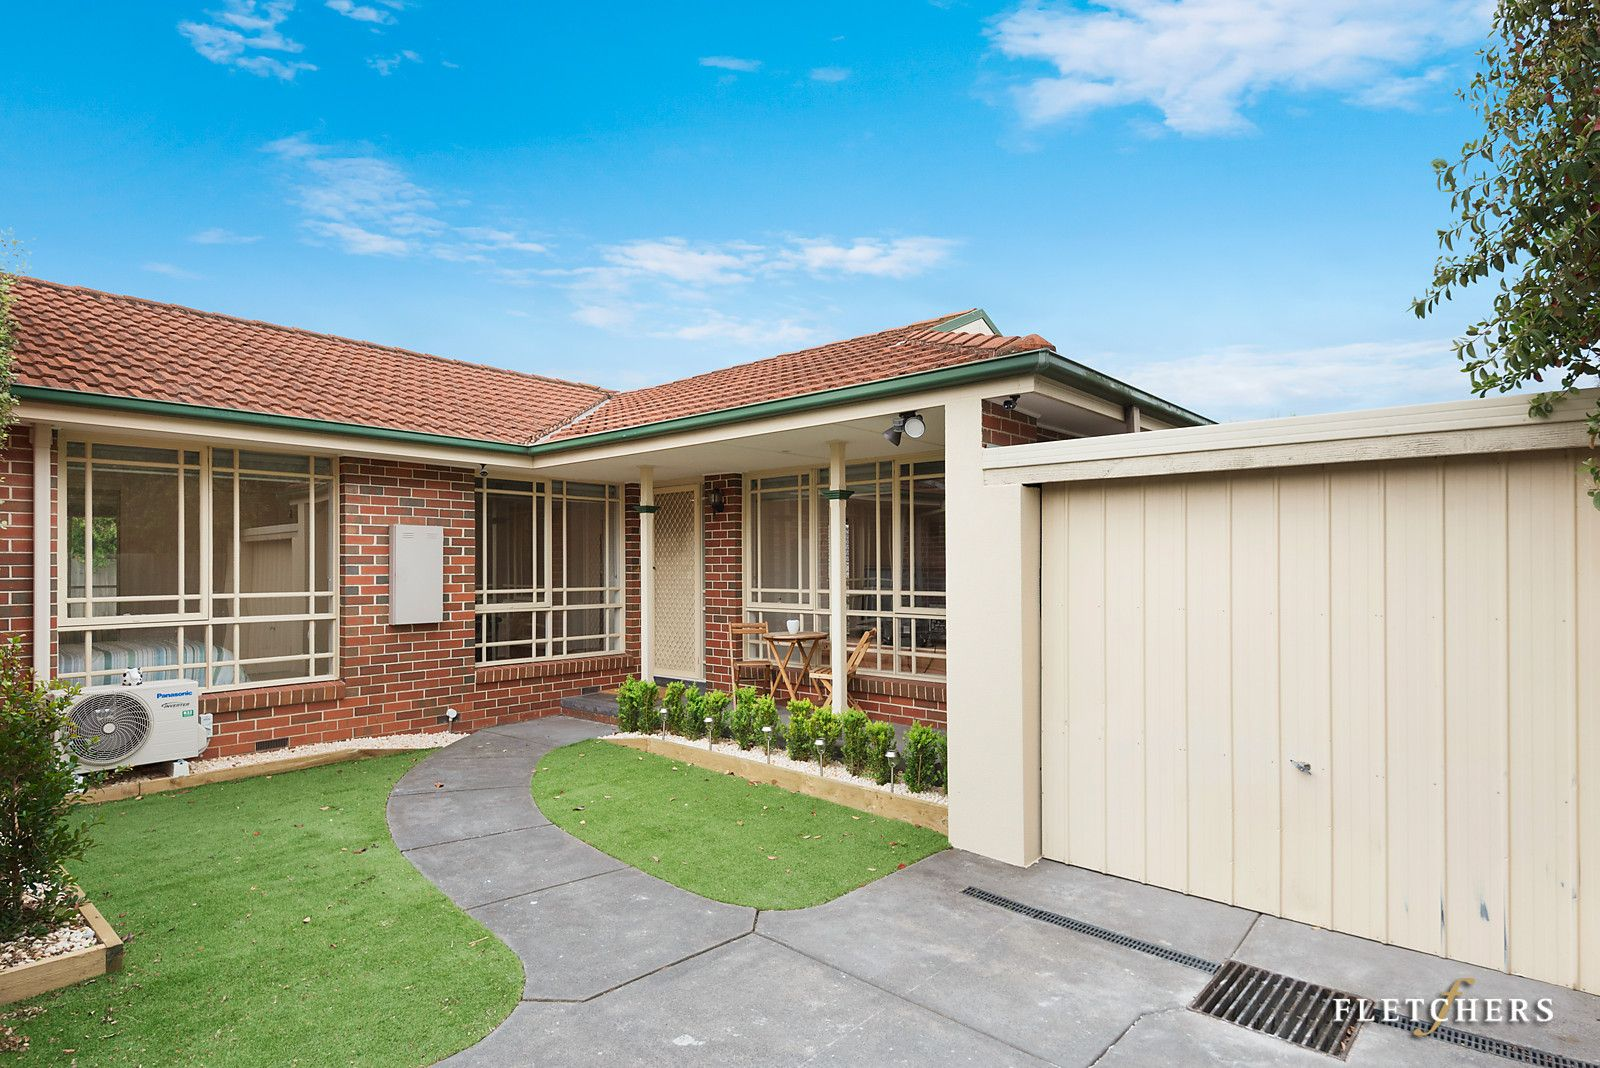 3/51 Wellman Street, Box Hill South VIC 3128, Image 0